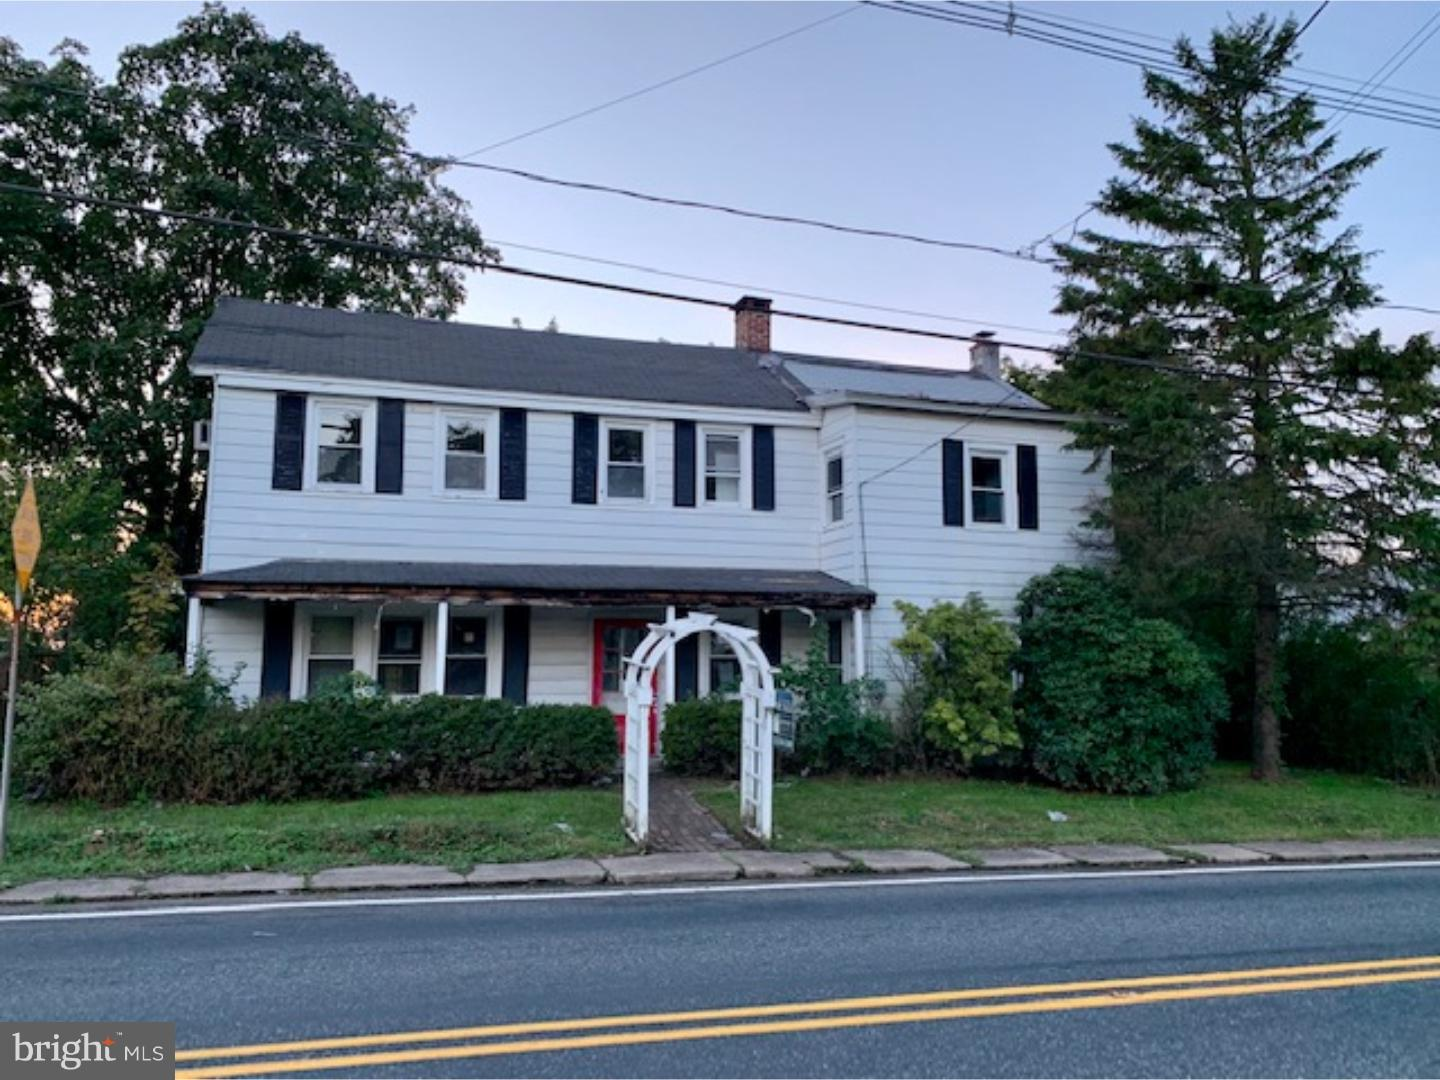 1041 COUNTY RD 519, FRENCHTOWN, NJ 08825